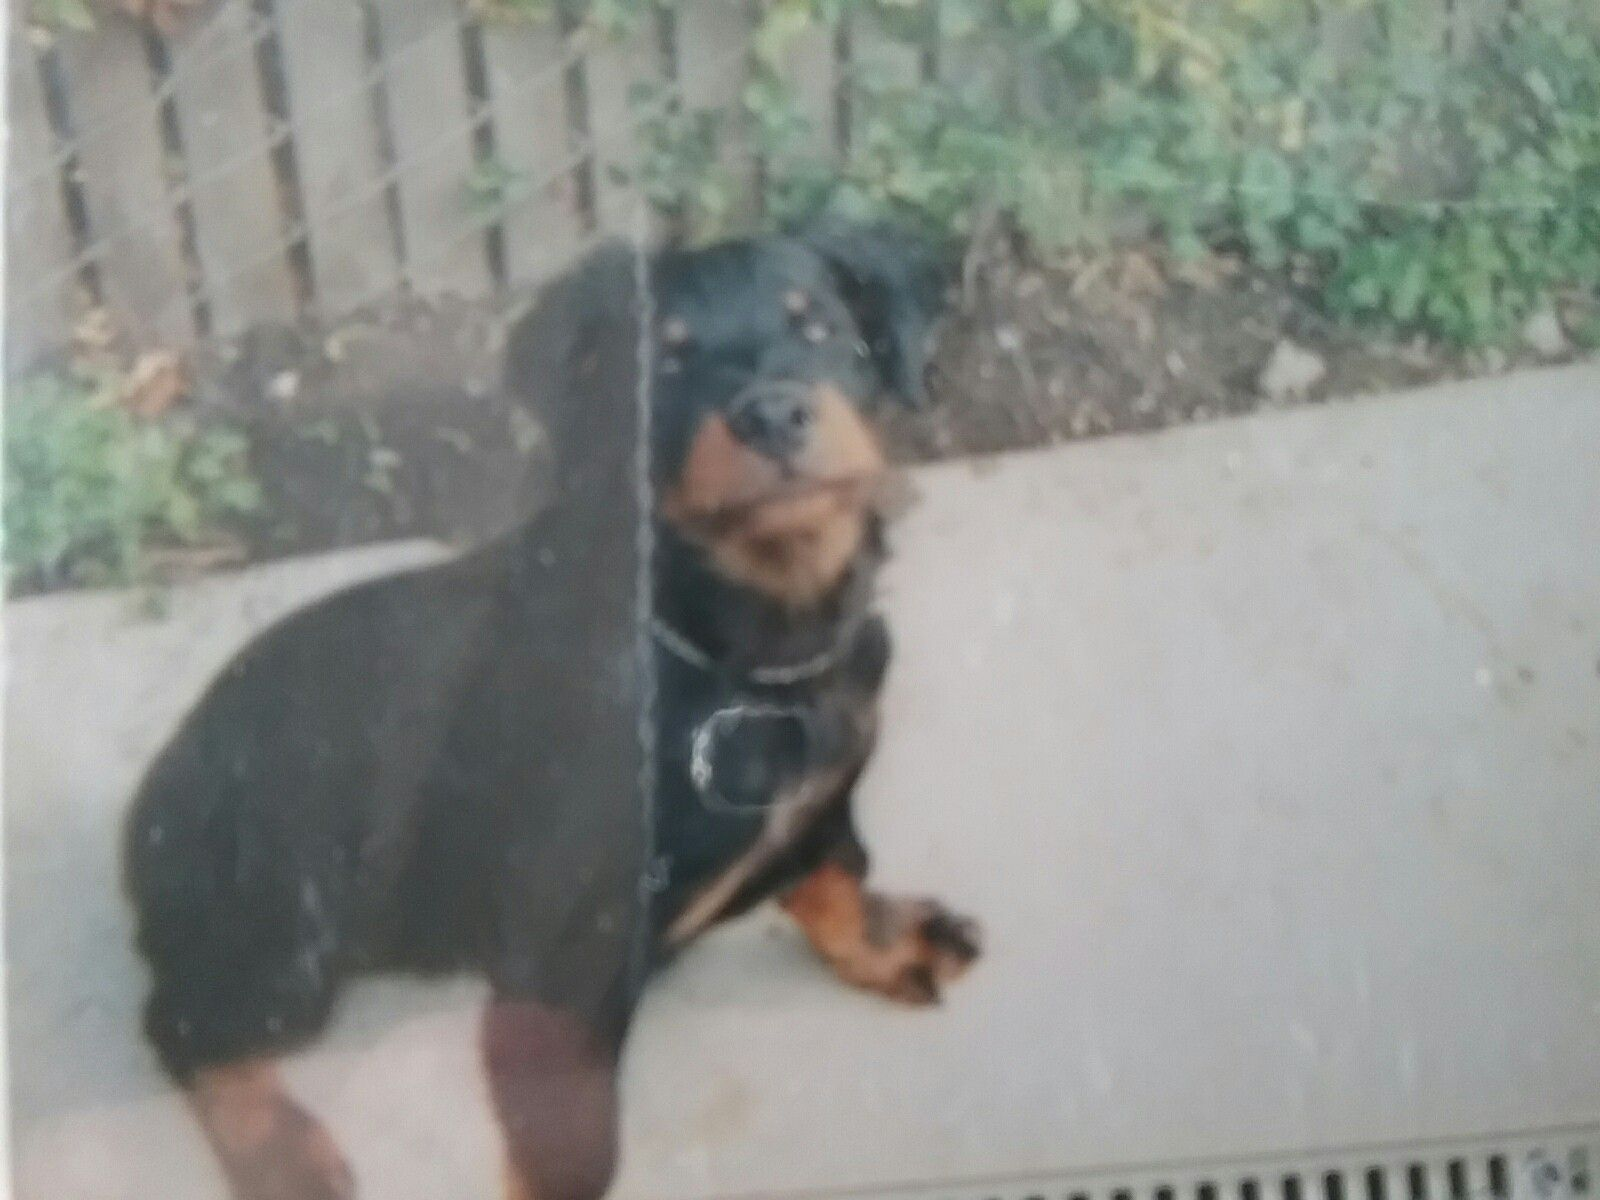 Bo My 1st Rottie Belgium Long Hair Was His Breed Great Friend Died